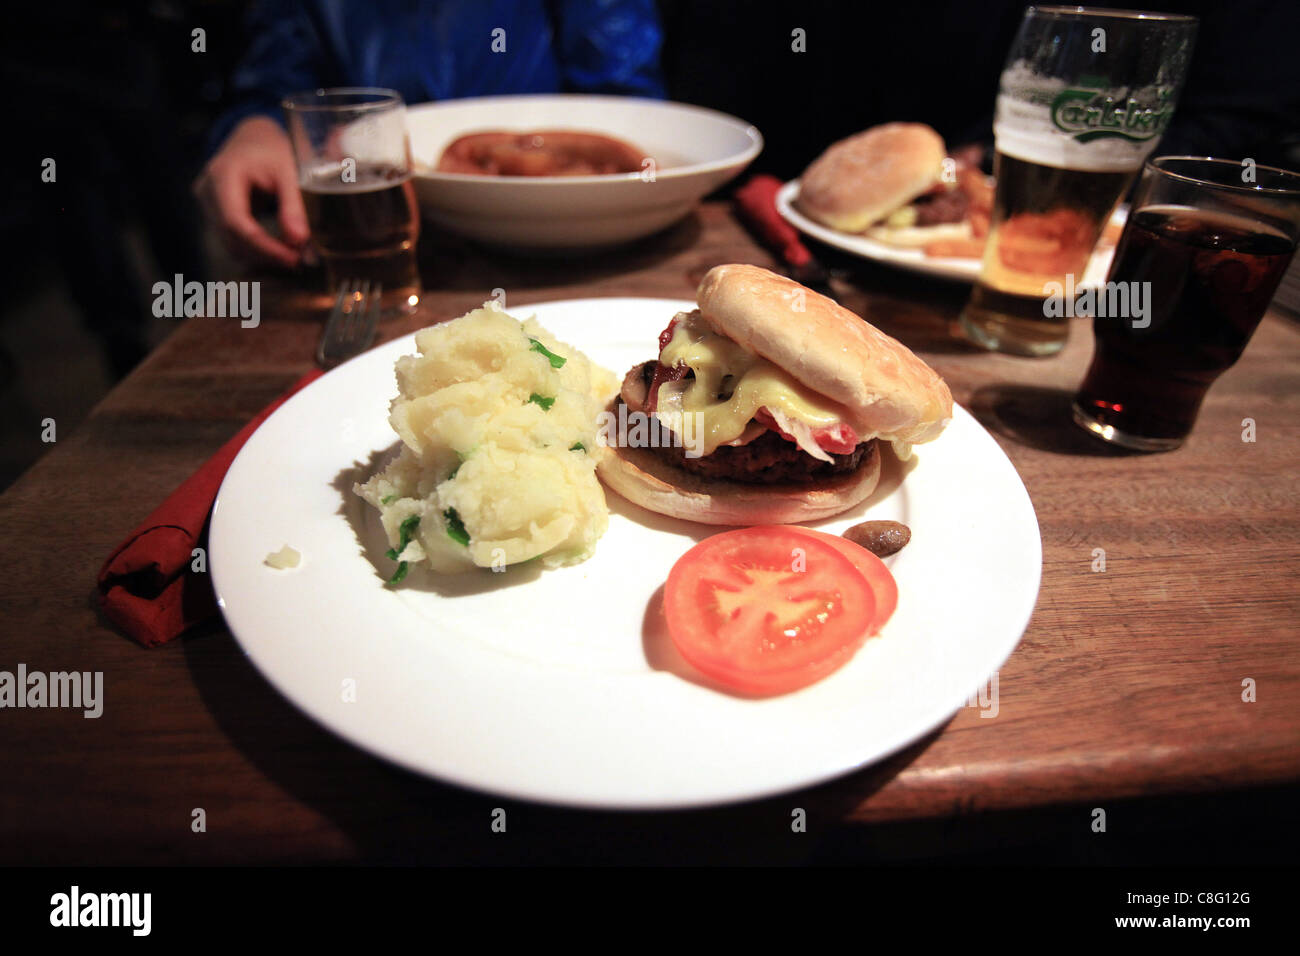 A cheeseburger served with champ (mashed potatoes with scallions) is served with beer in a pub. - Stock Image